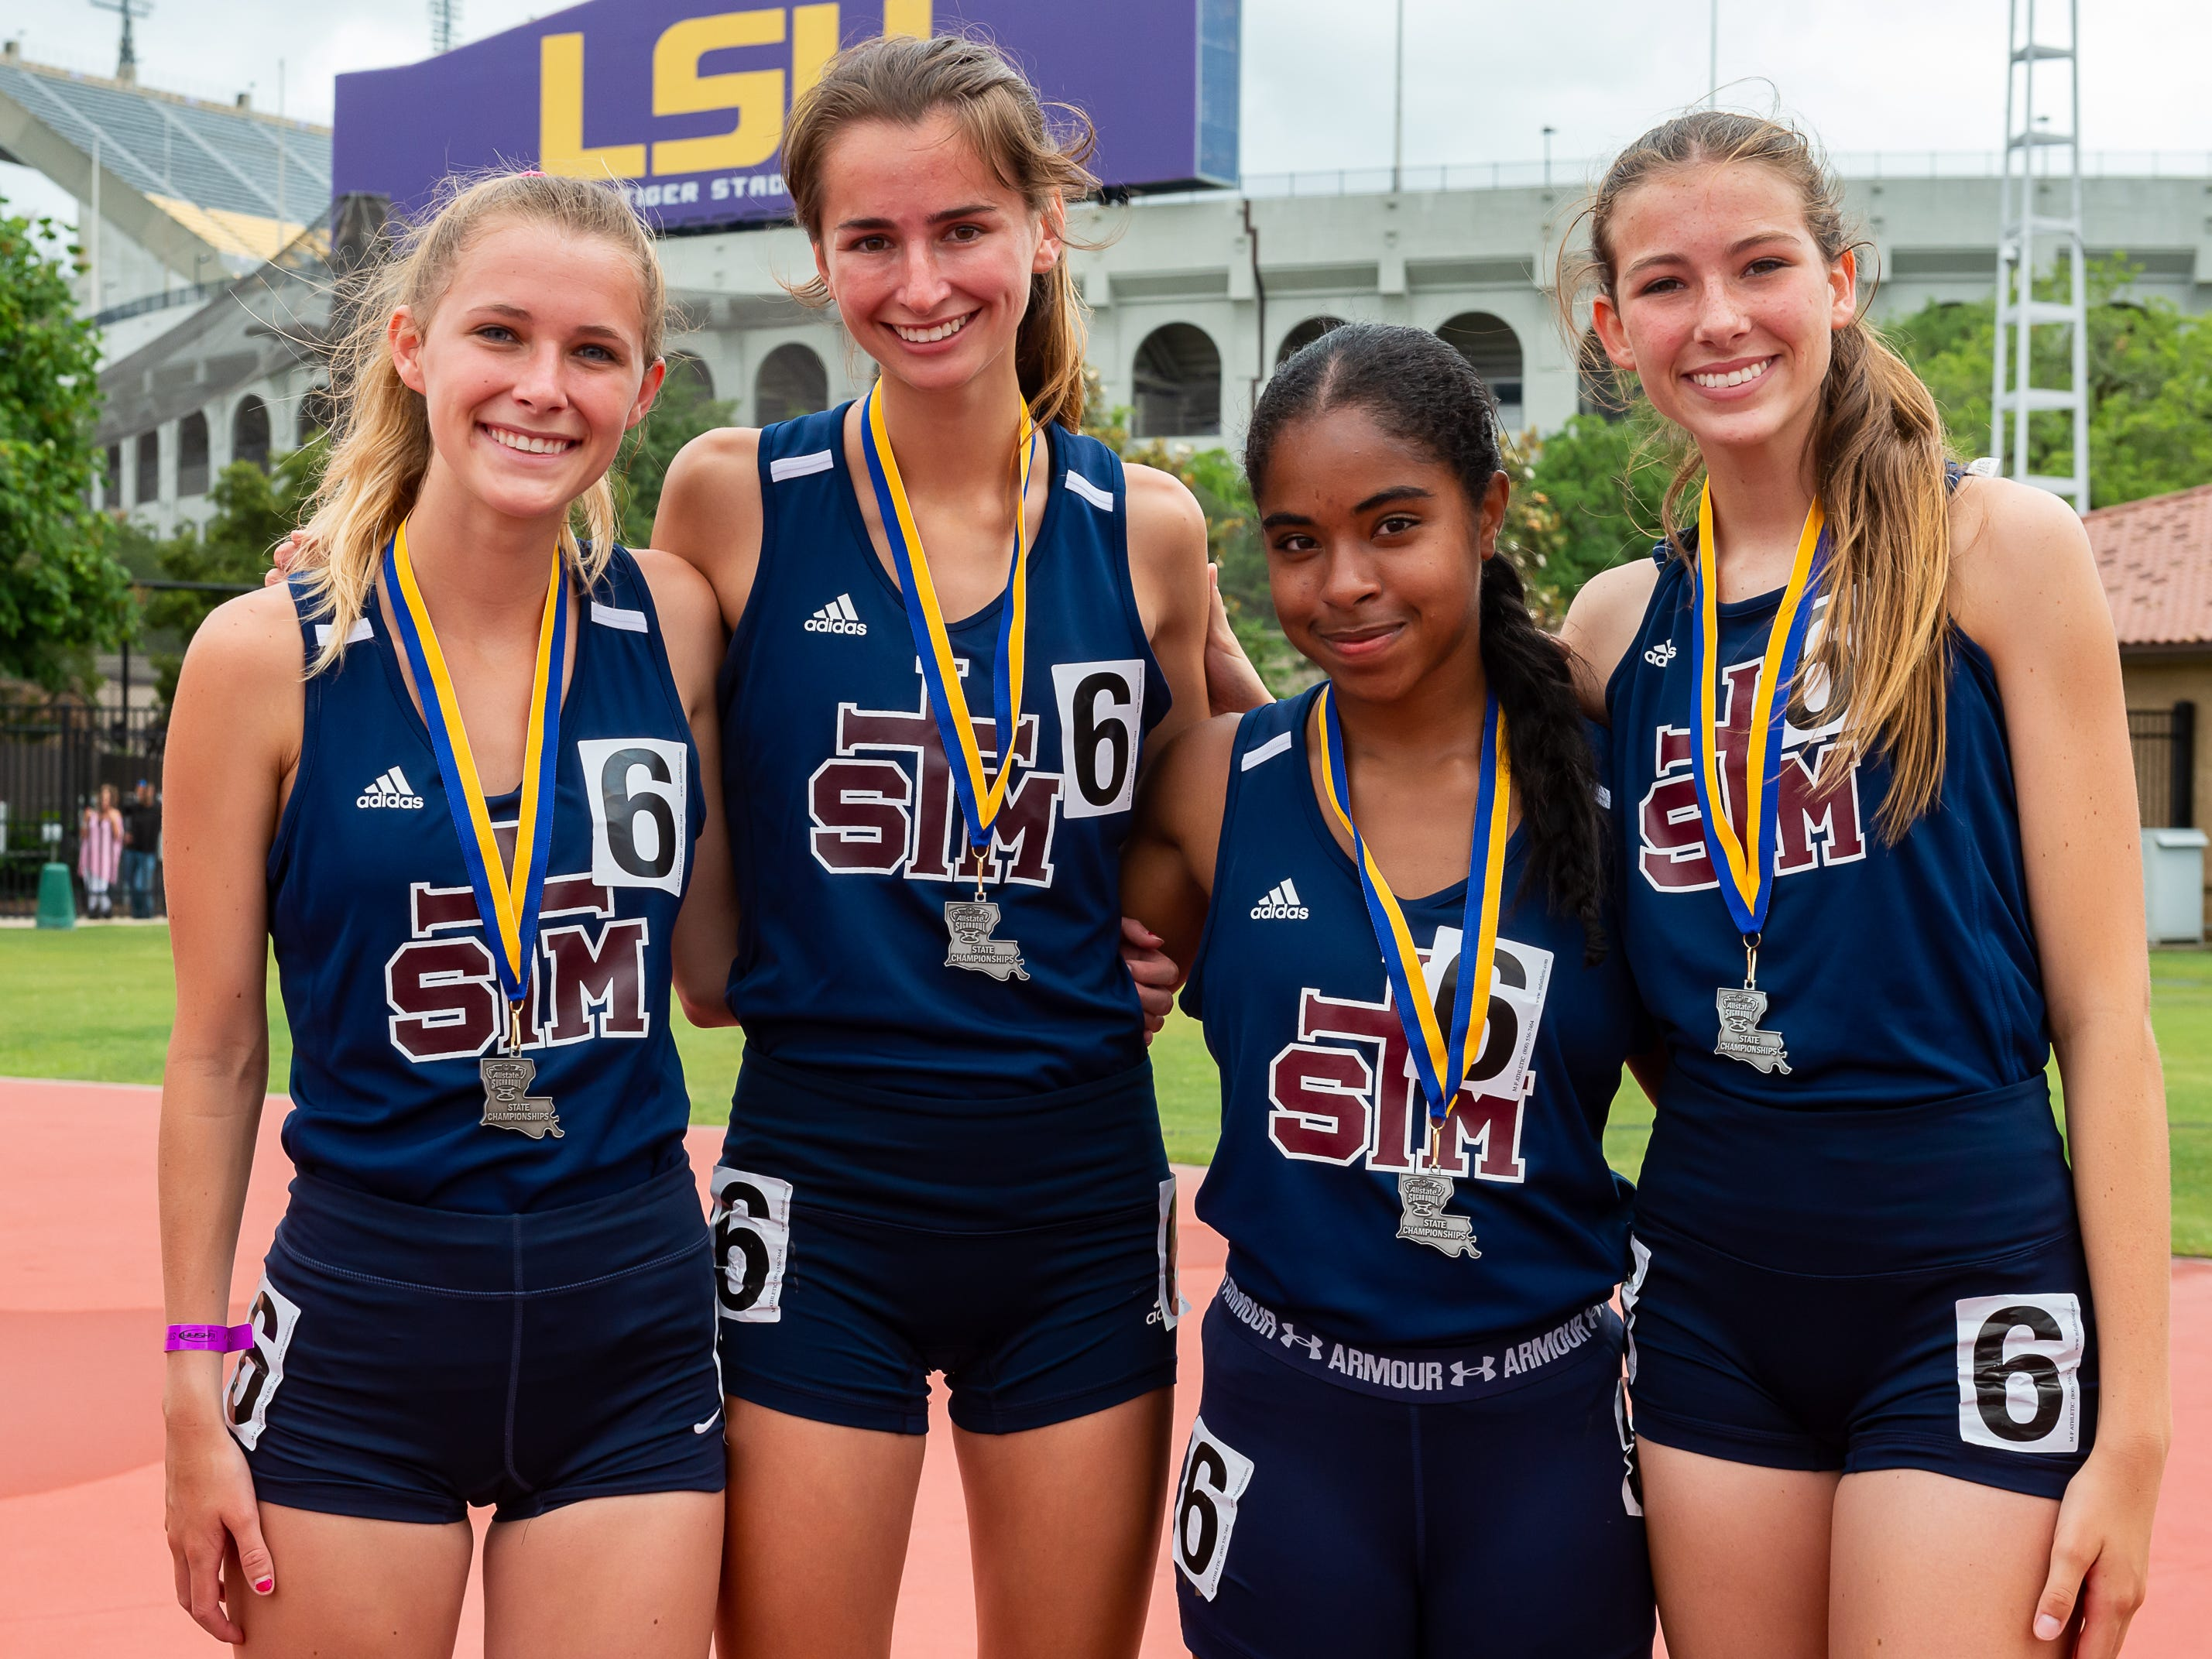 STM 4x800 girls relay team placed second at The LHSAA Sate Track Meet at Bernie Moore Track in Baton Rouge, LA. Saturday, May 4, 2019.